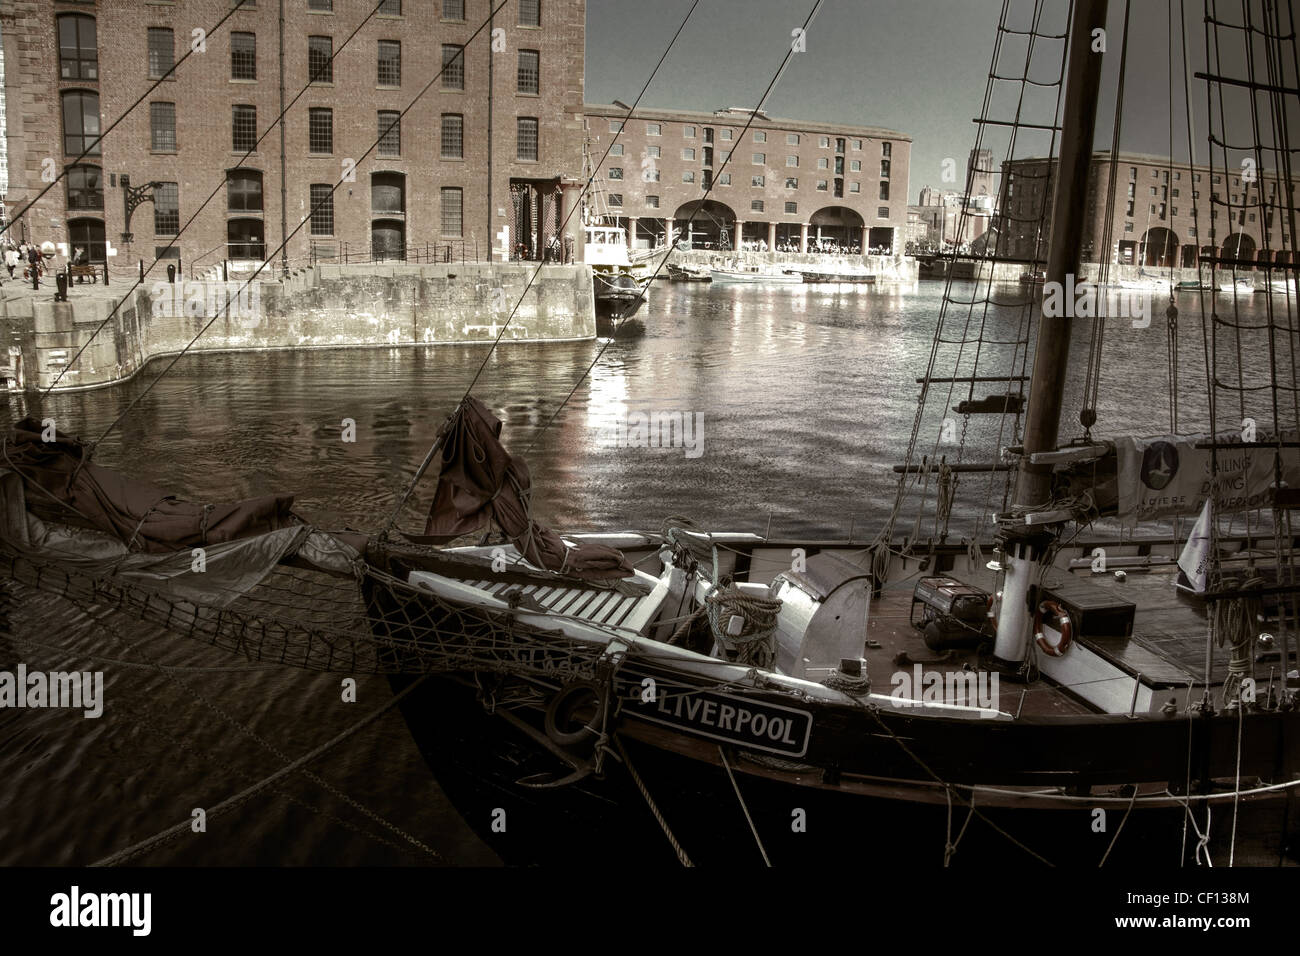 Livrpool,gotonysmith,liverpol,liverpool,mersyside,merseyside,dock,building,rigger,sailship,sail,ship,beatle,city,beatles,beatlesss,northwest,north,west,england,history,historic,boatyard,boat,yard,docks,wet,UNESCO,gotonysmith,Buy Pictures of,Buy Images Of,Albert,Dock,is,a,complex,of,dock,buildings,and,warehouses,in,Liverpool,England. Designed by Jesse Hartley and Philip Hardwick,it was opened in 1846,and,was,the,first,structure,in,Britain,to,be,built,from,cast,iron,brick and stone,with no structural wood. As a result,it was the first non-combustible warehouse system in the world.,At,the,time,of,its,construction,the,Albert,Dock,was,considered,a,revolutionary,docking,system,because,ships,were,loaded,and,unloaded,directly,from/to,the,warehouses.,Two,years,after,it,opened,it,was,modified,to,feature,the,worlds,first,hydraulic,cranes.,Due,to,its,open,yet,secure,design,the,Albert,Dock,became,a,popular,store,for,valuable,cargoes,such,as,brandy,cotton,tea,silk,tobacco,ivory and sugar. However,despite the Albert Docks advanced design,the rapid development of shipping technology,1